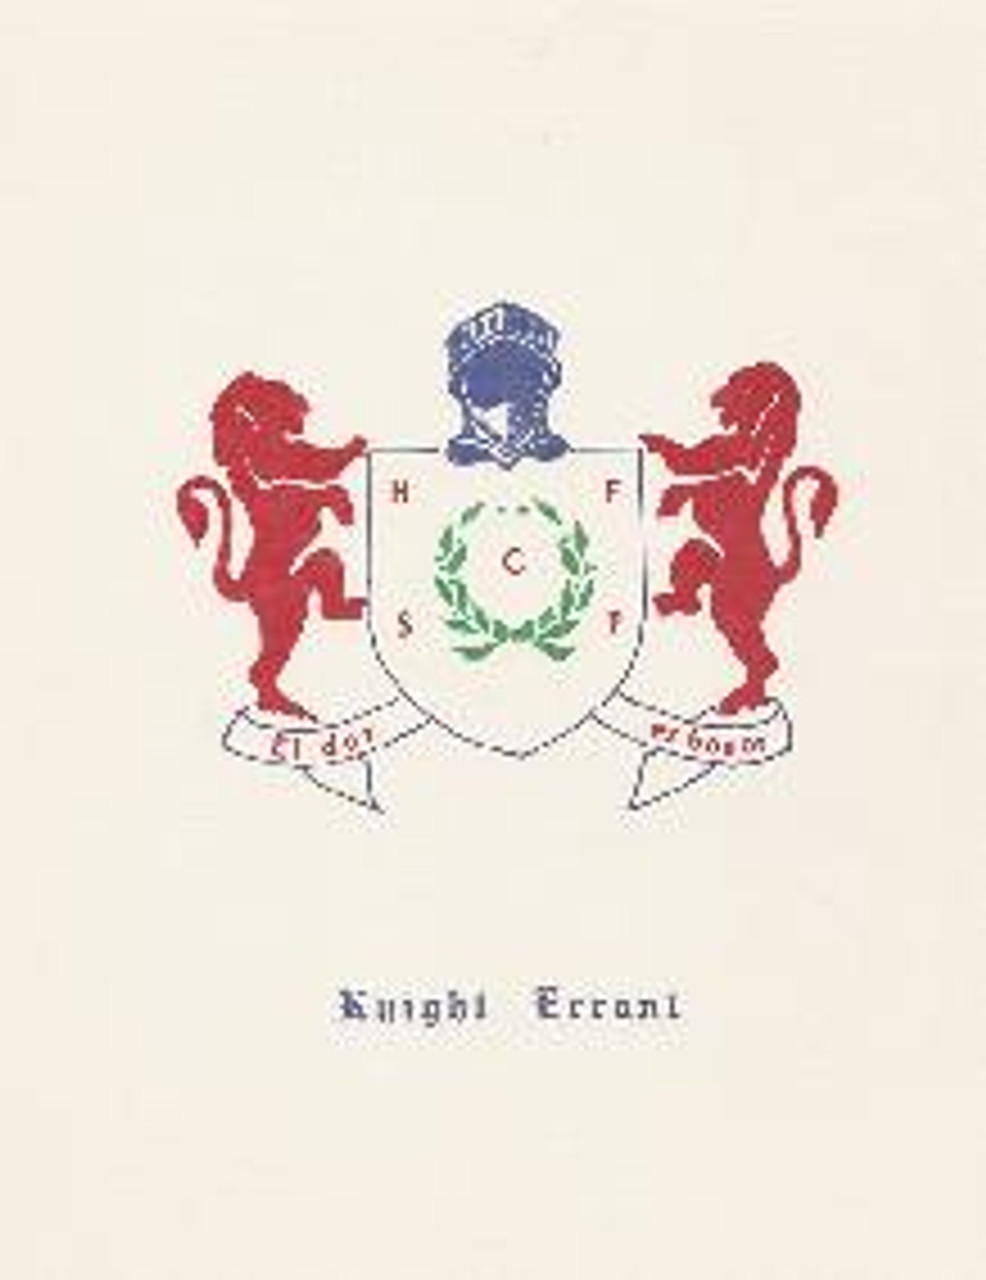 Young Knight Errant Coat of Arms on Card Stock for Framing